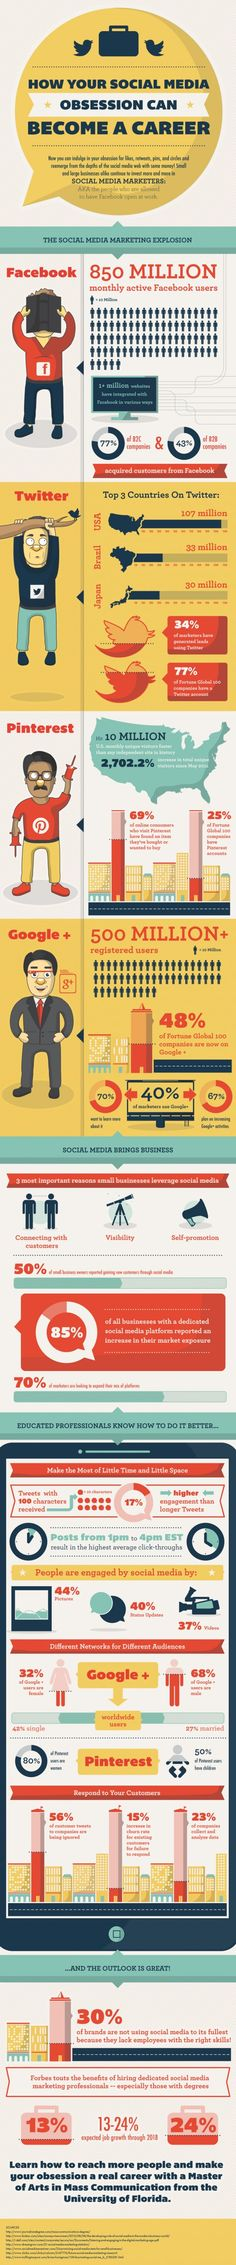 How the #SocialMedia #Obsession can become a #career [Infographic]